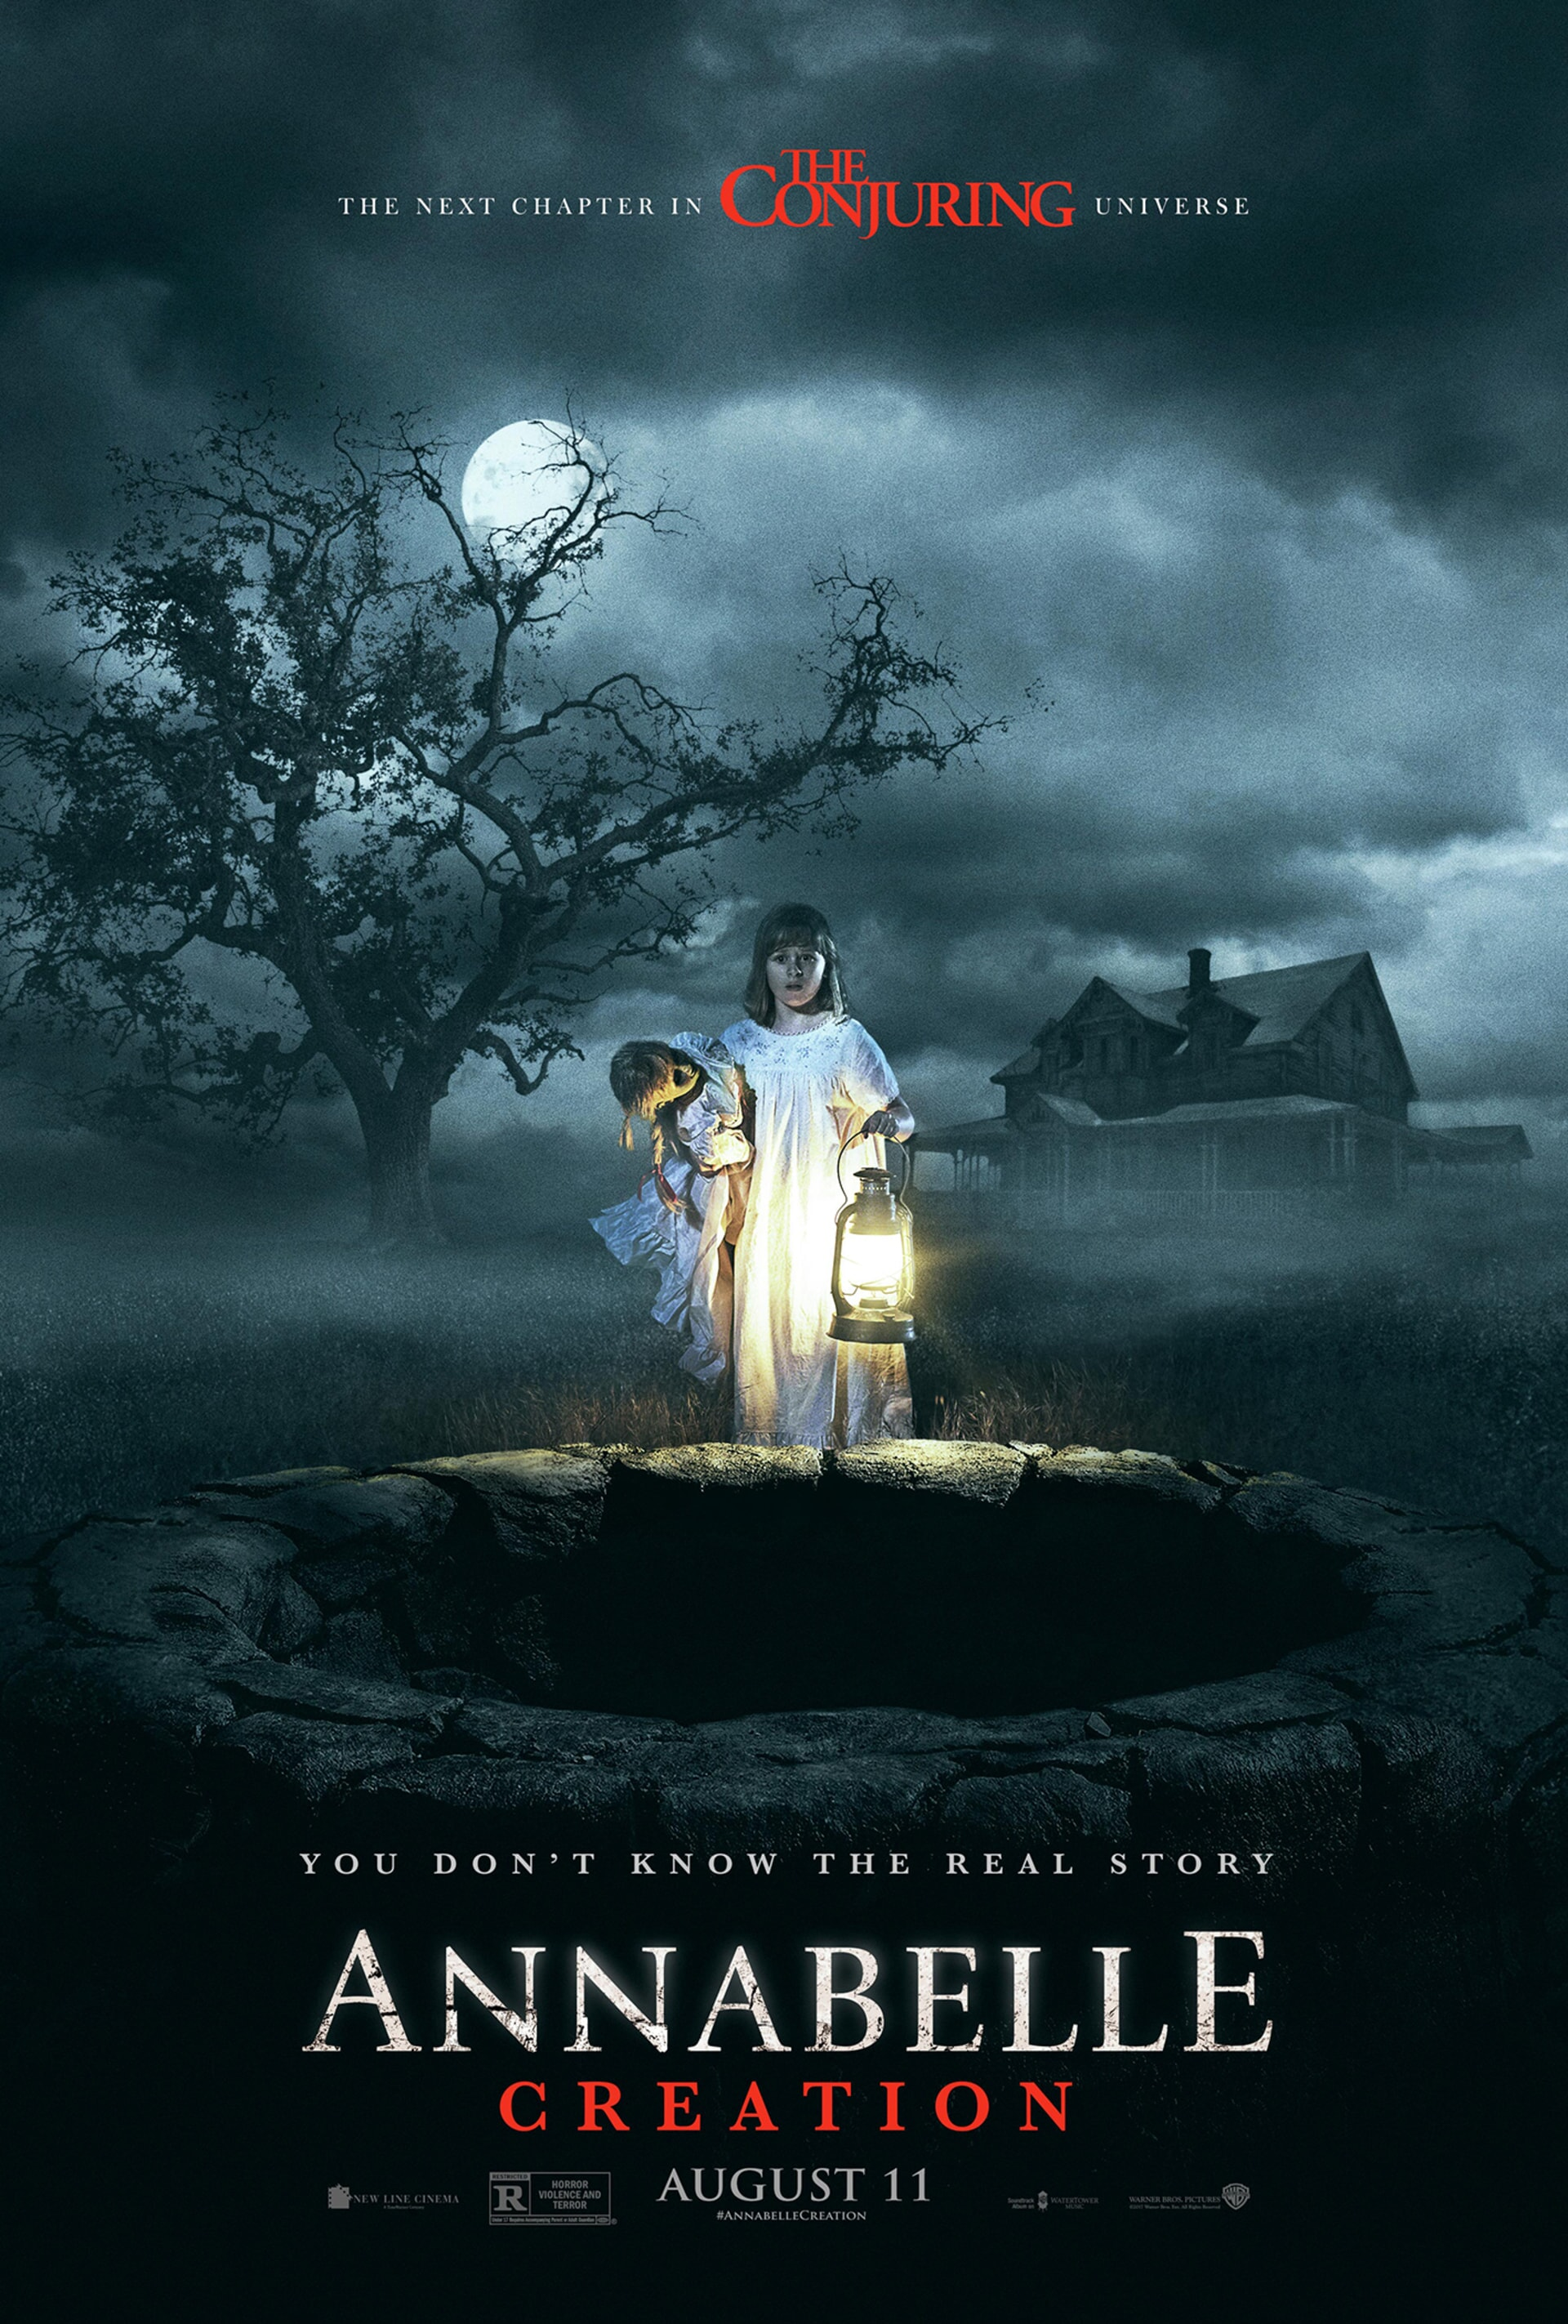 Girl holding Annabelle doll next to a well